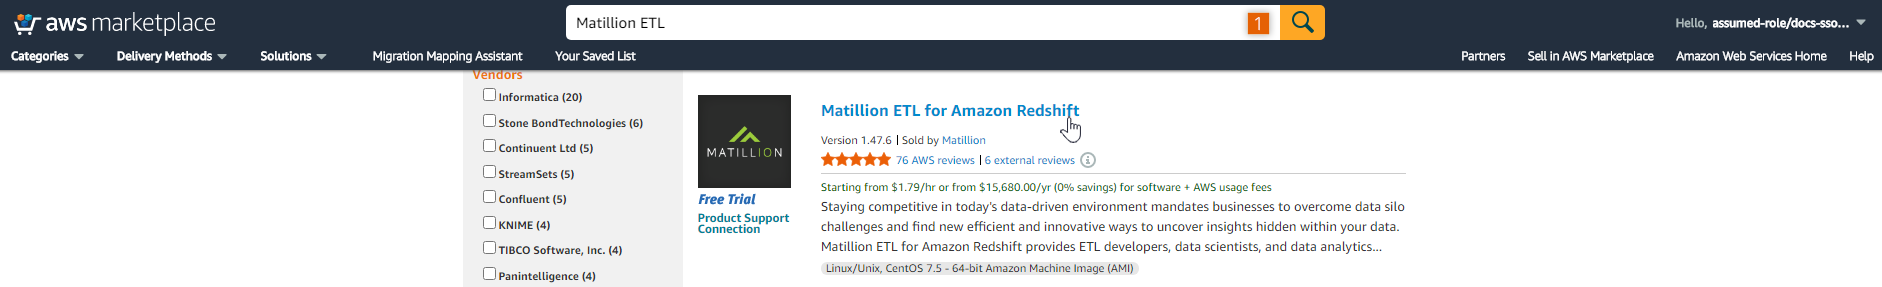 Locate Matillion ETL in AWS Marketplace